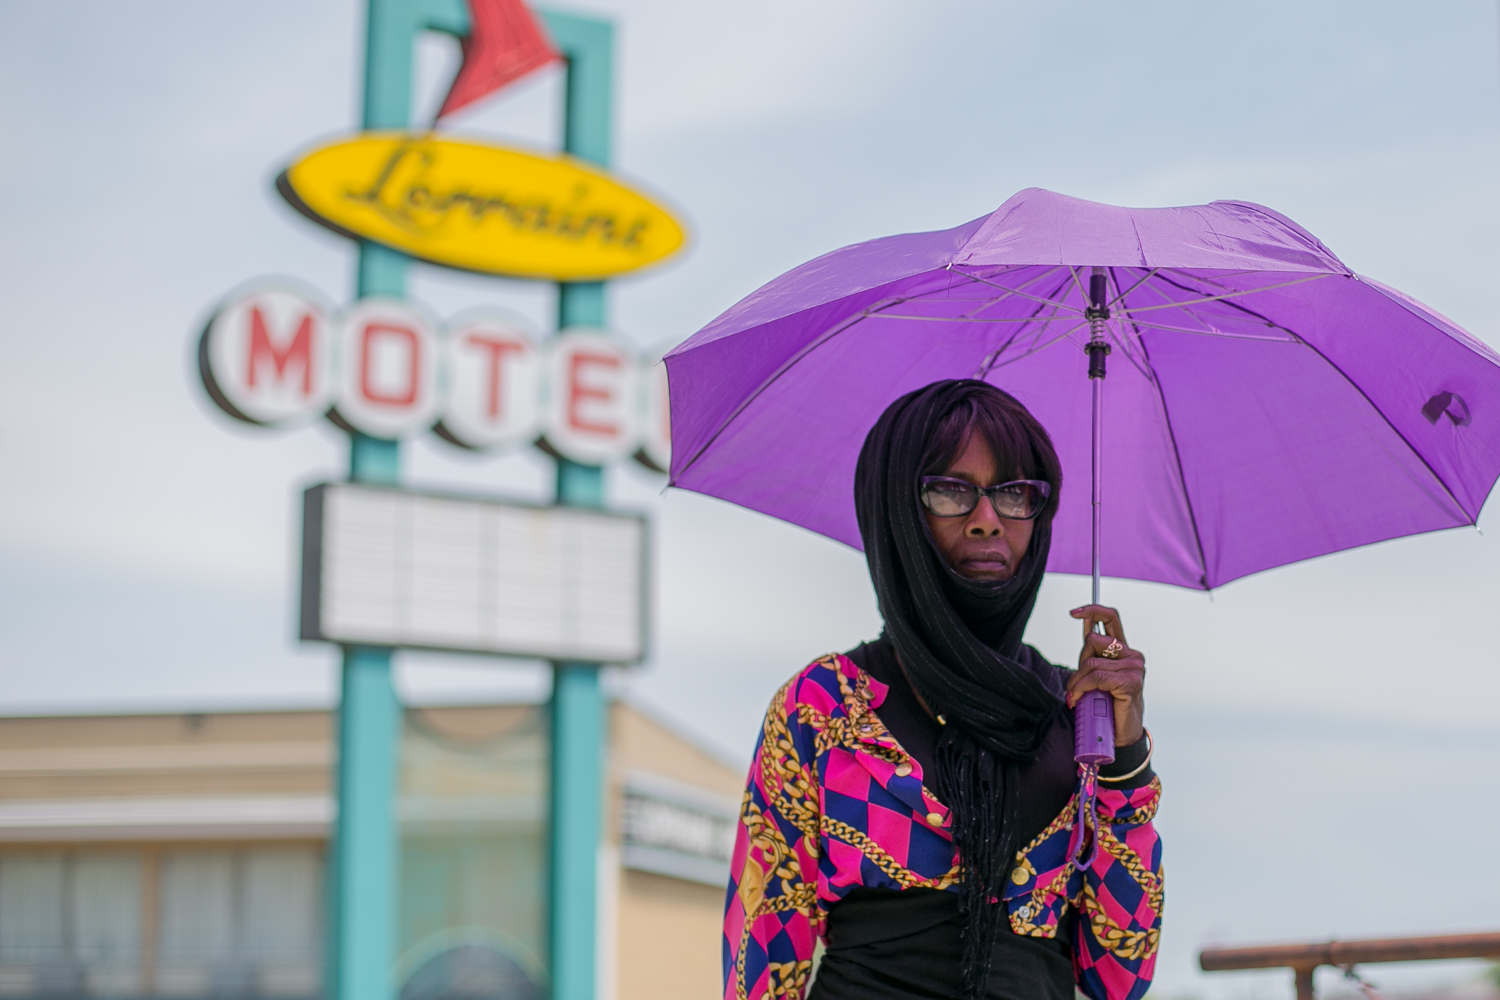 Jacqueline Smith has been living/protesting outside the Lorraine Hotel for 27 years 95 days. Martin Luther King, Jr. was killed on the balcony of the hotel on April 4, 1968. It later became the National Civil Rights museum. Smith says the motel should be set up to assist and shelter those in need, it's what King would have wanted.